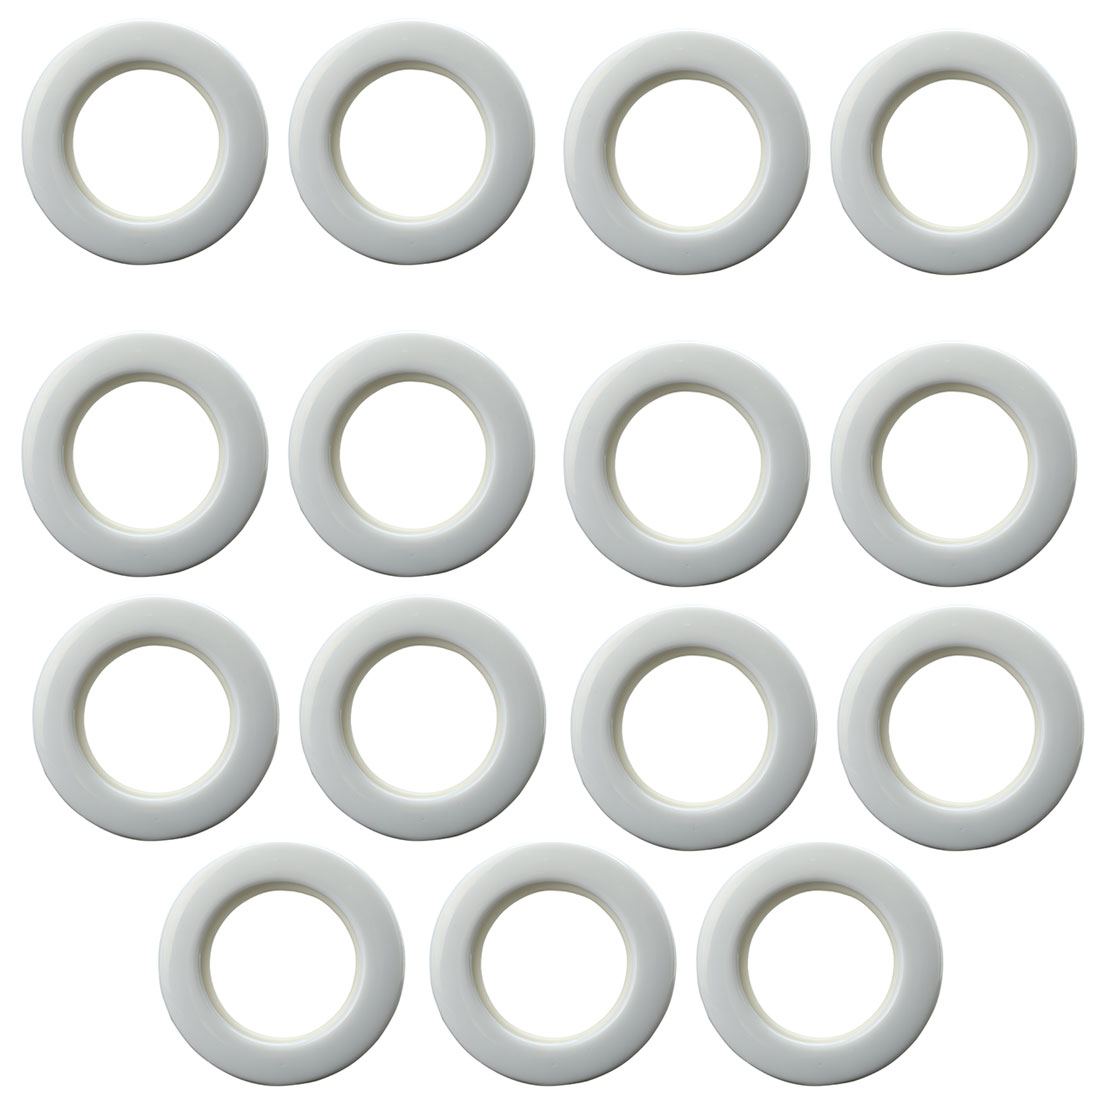 Bathroom Shower Plastic Curtain Ring Hook Sliding Hangers Silver Tone 15Pcs